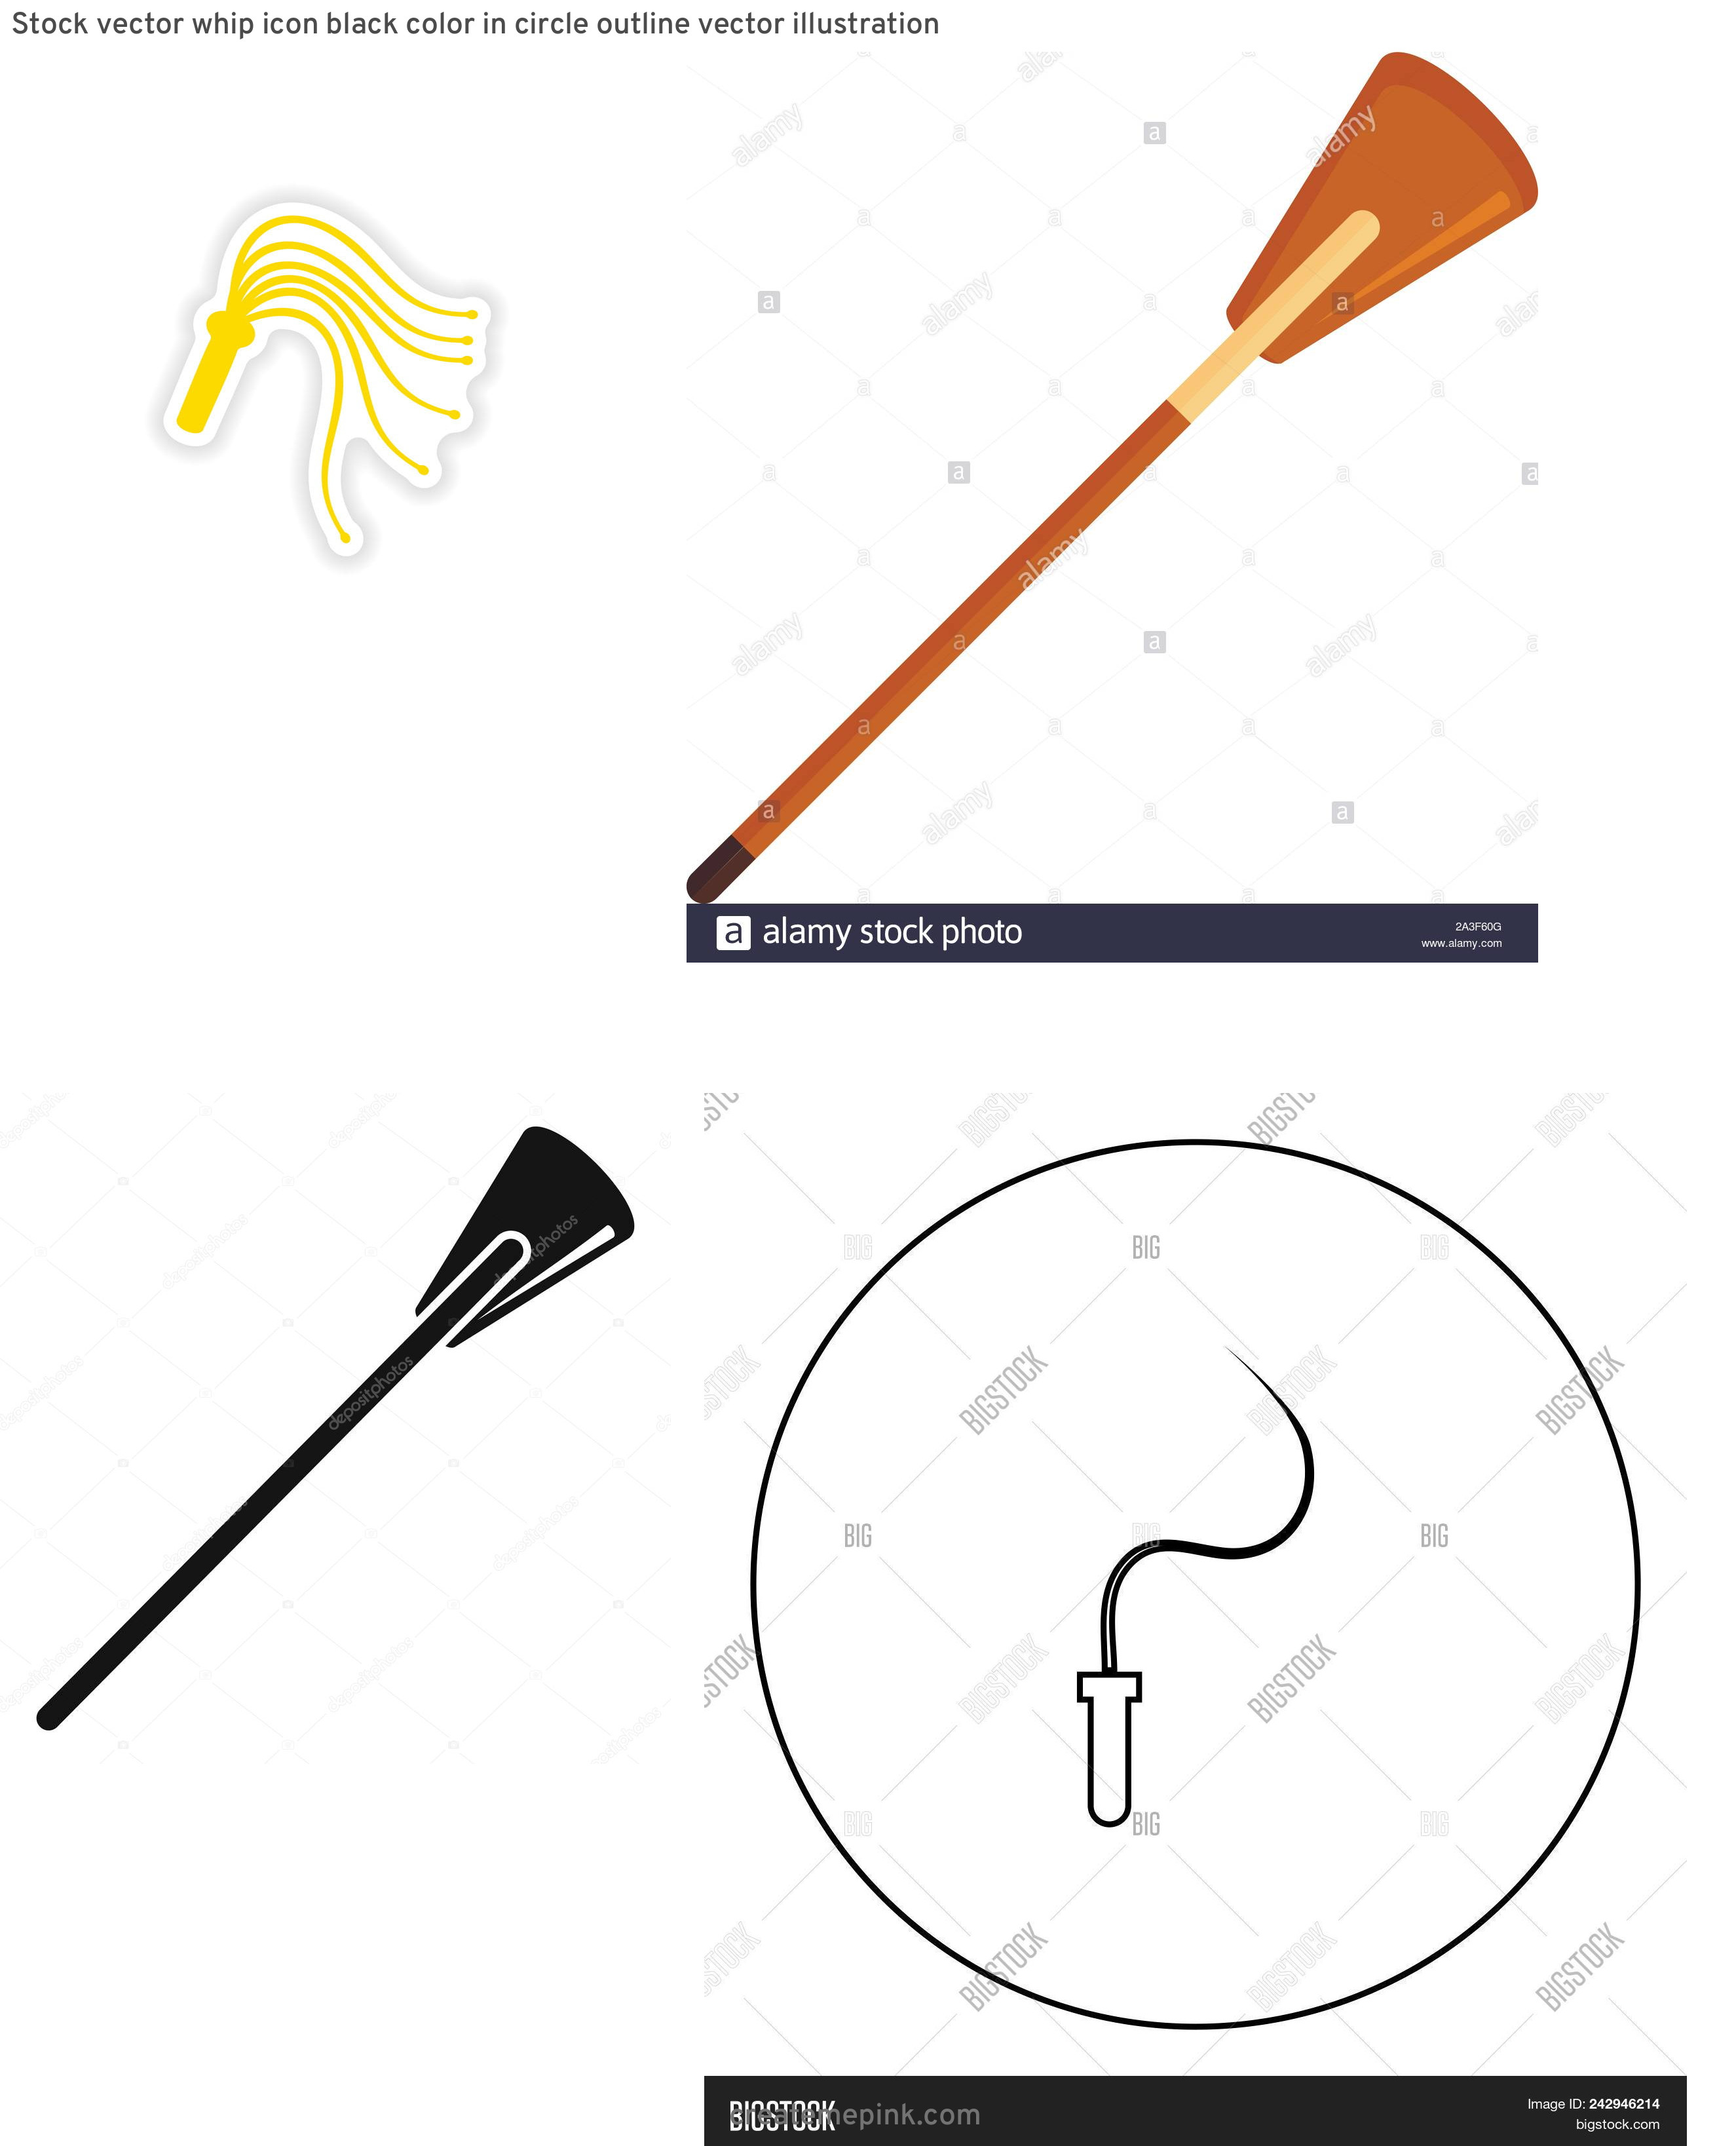 Whip Vector: Stock Vector Whip Icon Black Color In Circle Outline Vector Illustration